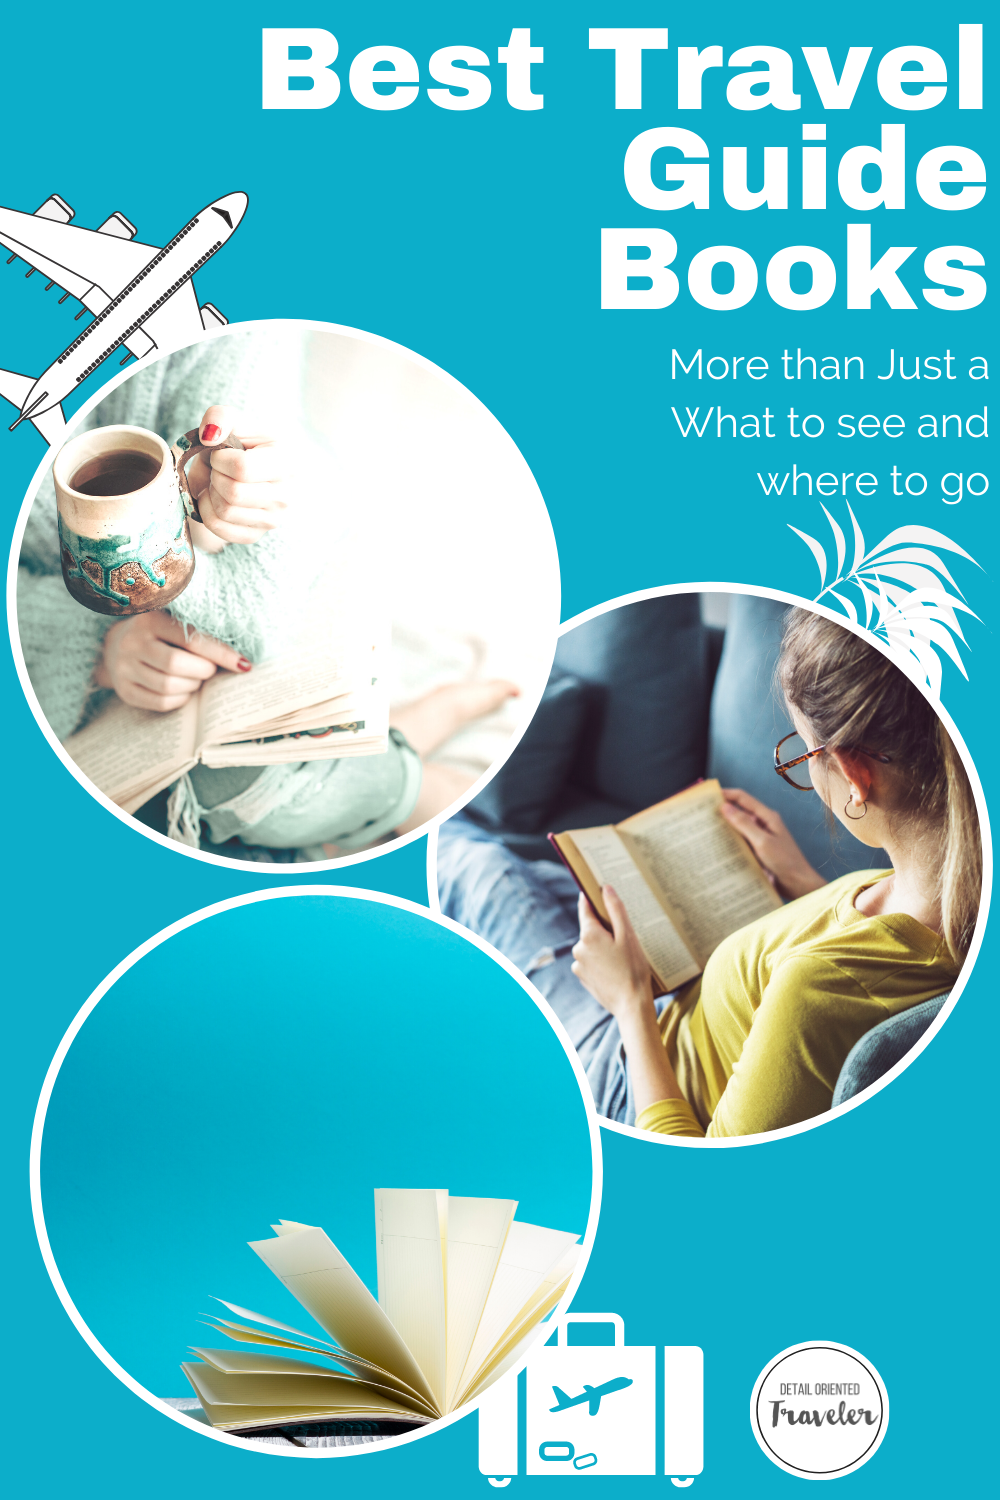 Travel Guide Books That Are More Than A Guide Book Detail Oriented Traveler In 2020 Travel Guide Book Travel Guide Travel Bookshelf